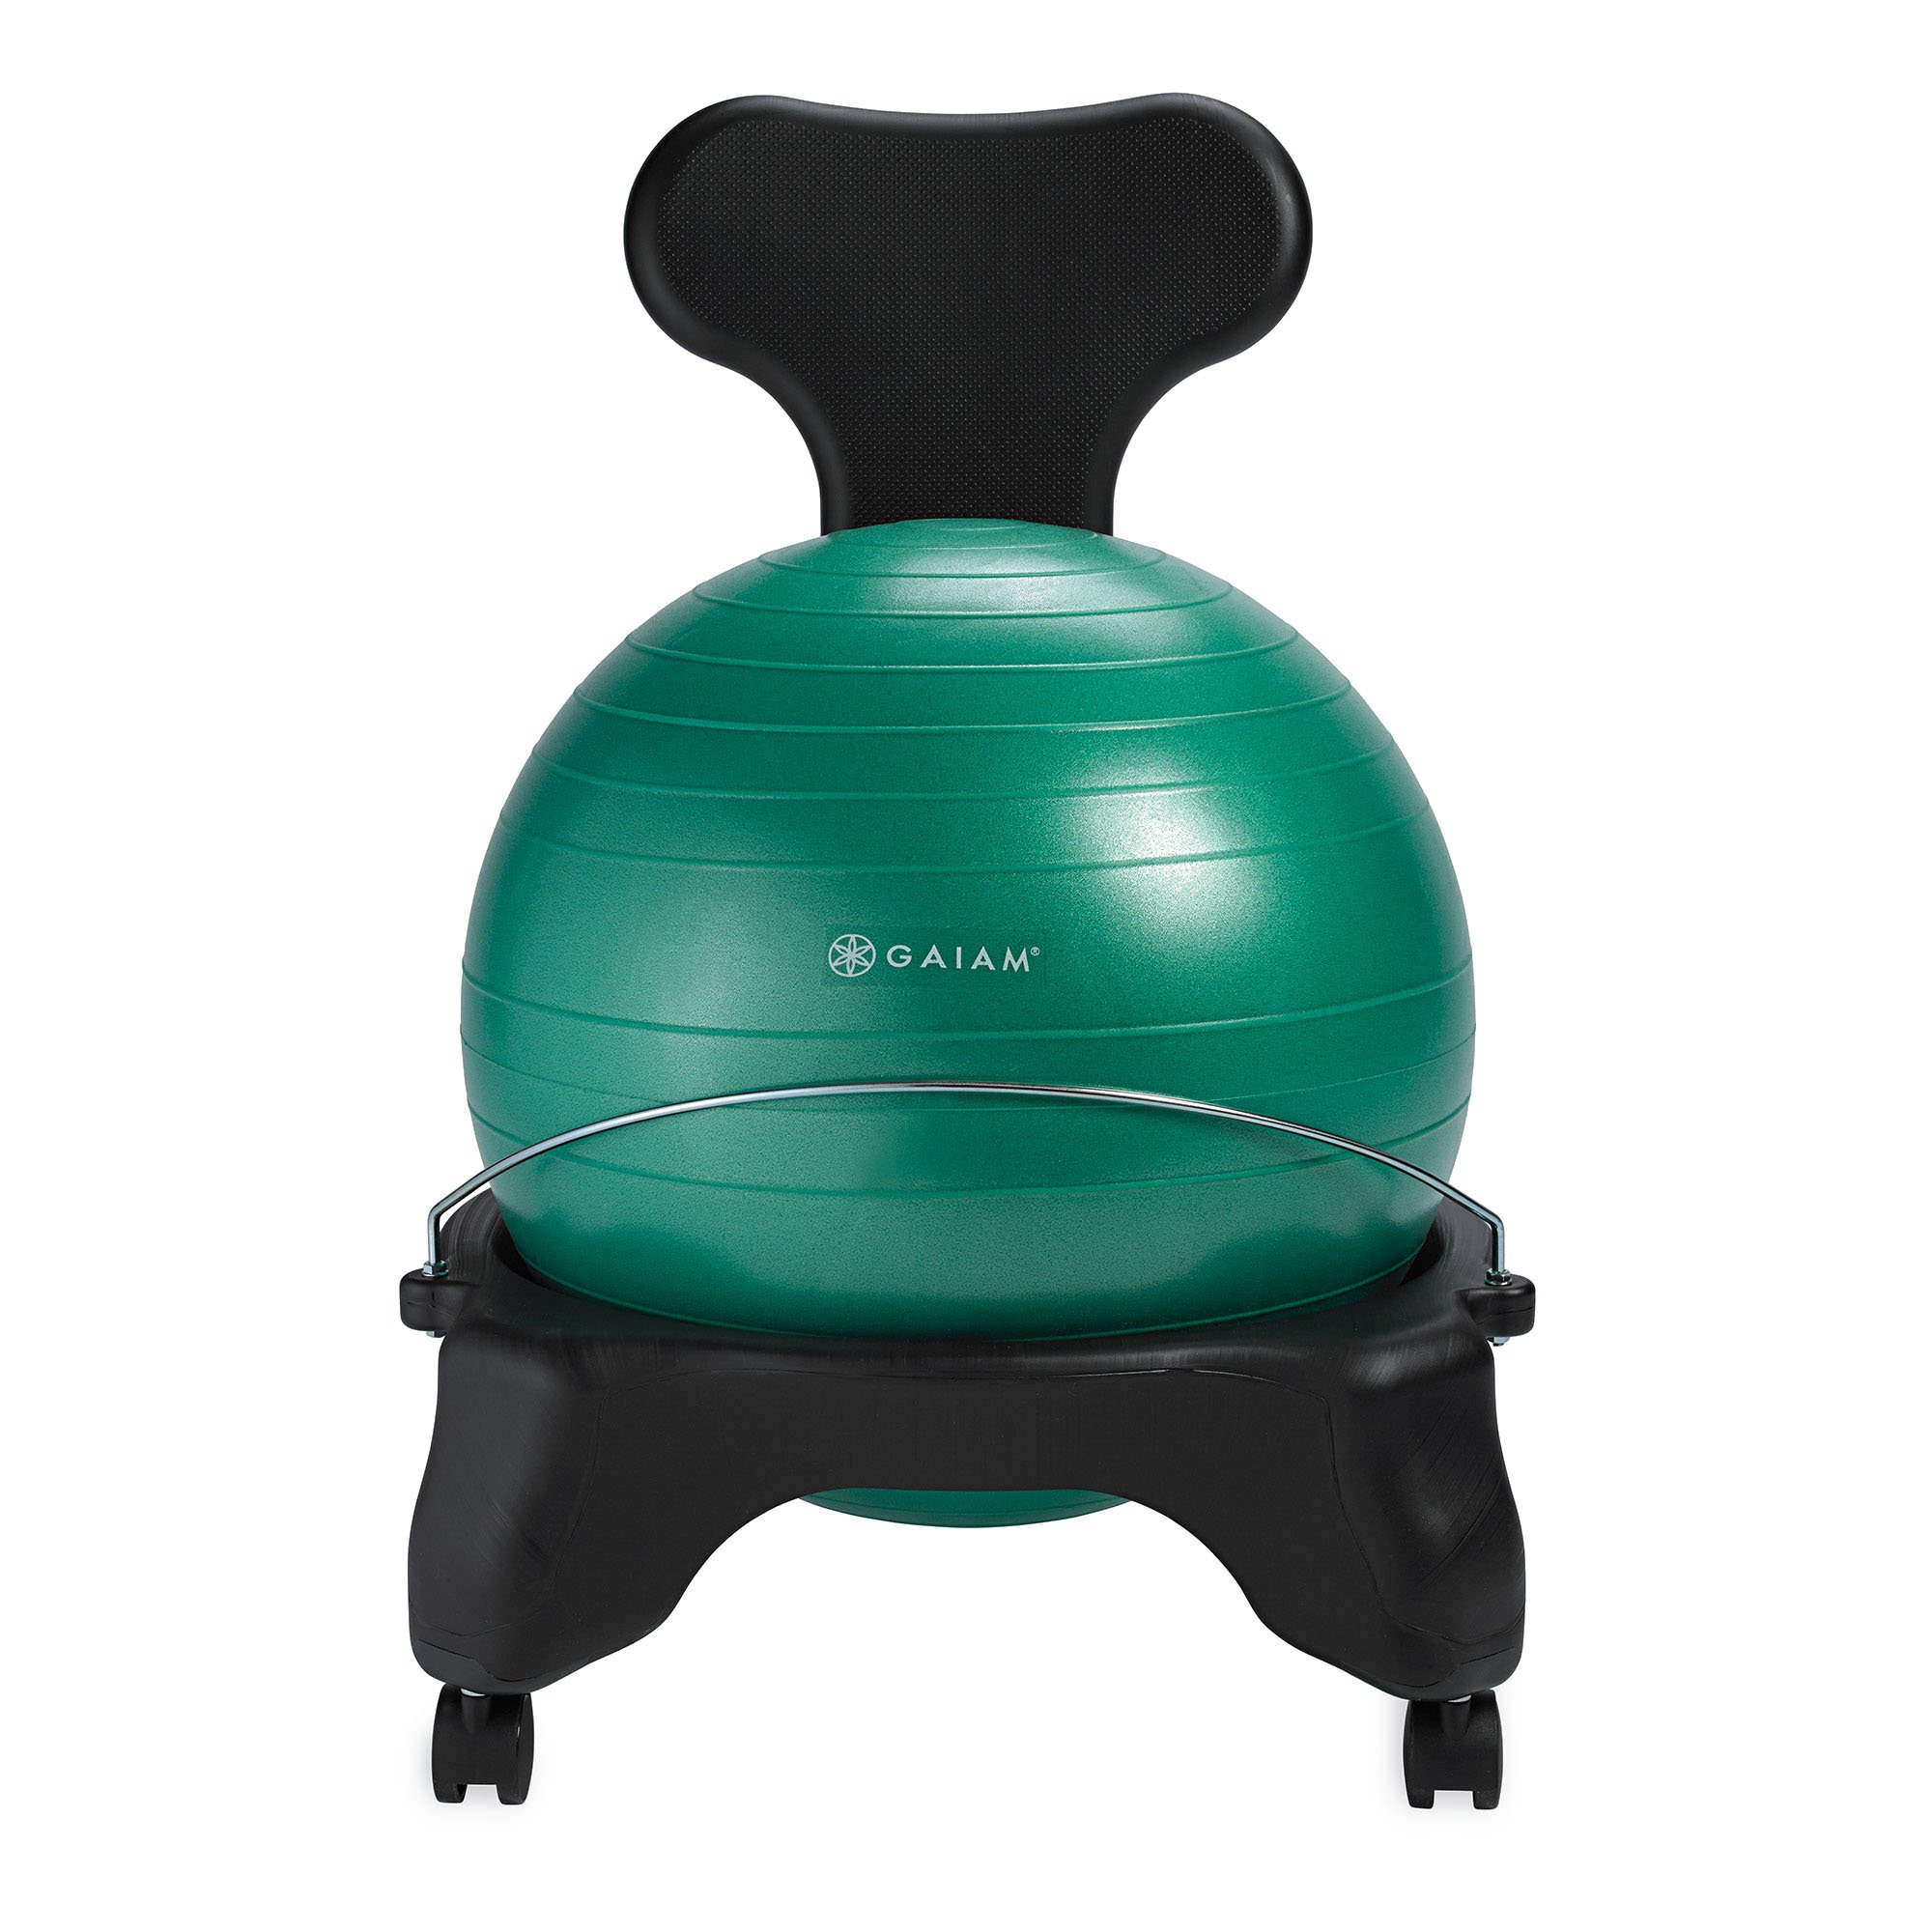 Gaiam Classic Balance Ball Chair – Exercise Stability Yoga Ball Premium Ergonomic Chair for Home and Office Desk with Air Pump, Exercise Guide and Satisfaction Guarantee, Green by Gaiam (Image #8)